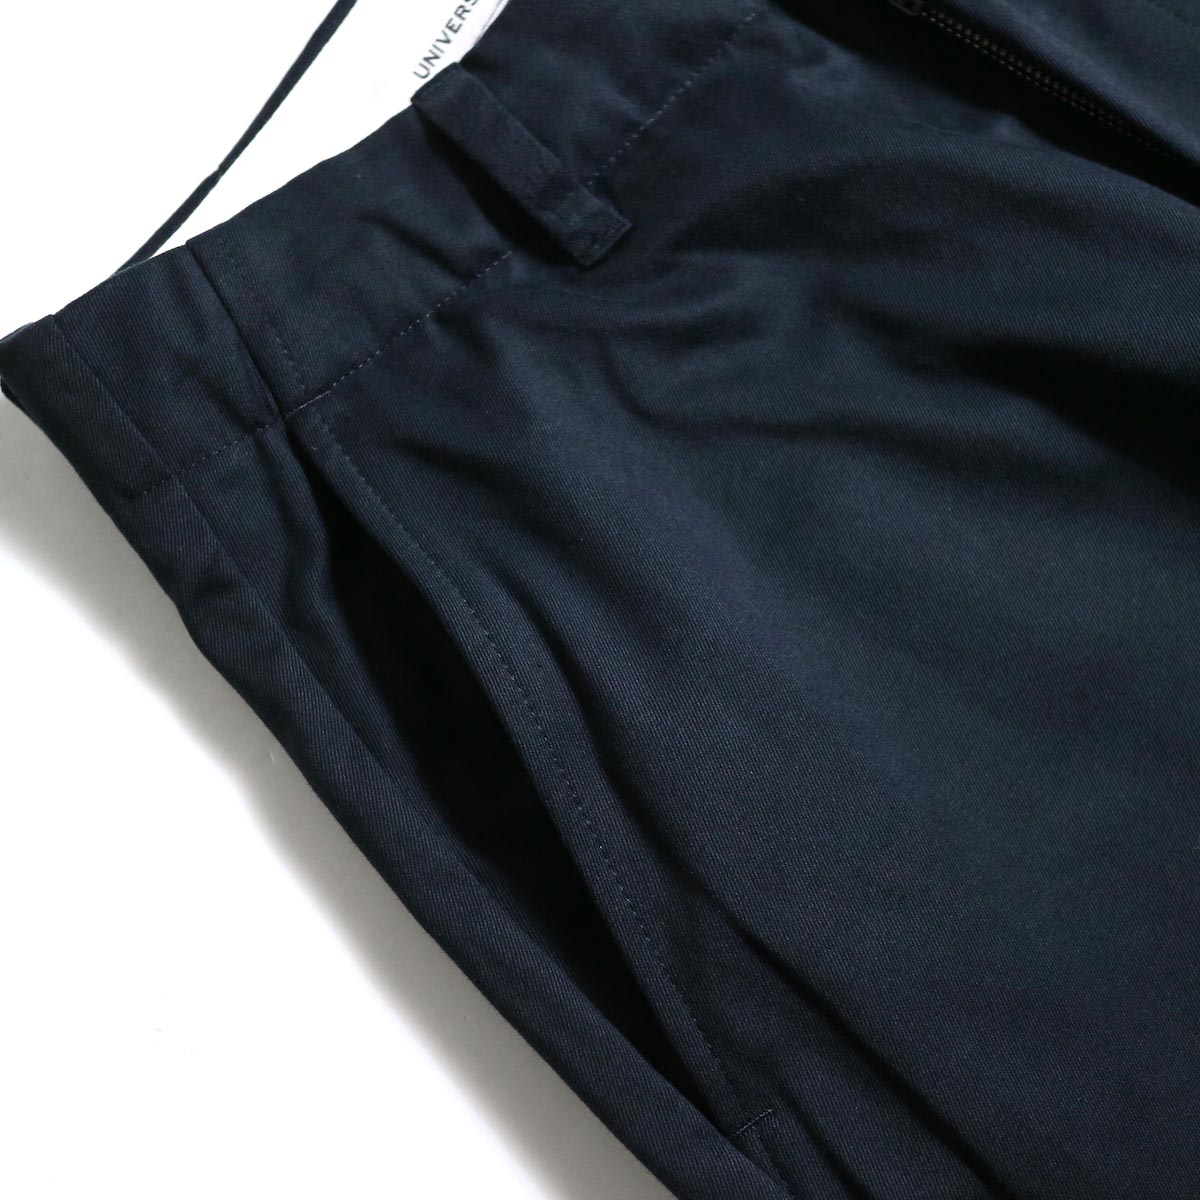 UNIVERSAL PRODUCTS / No Tuck Wide Chino Trousers (Navy)ポケット